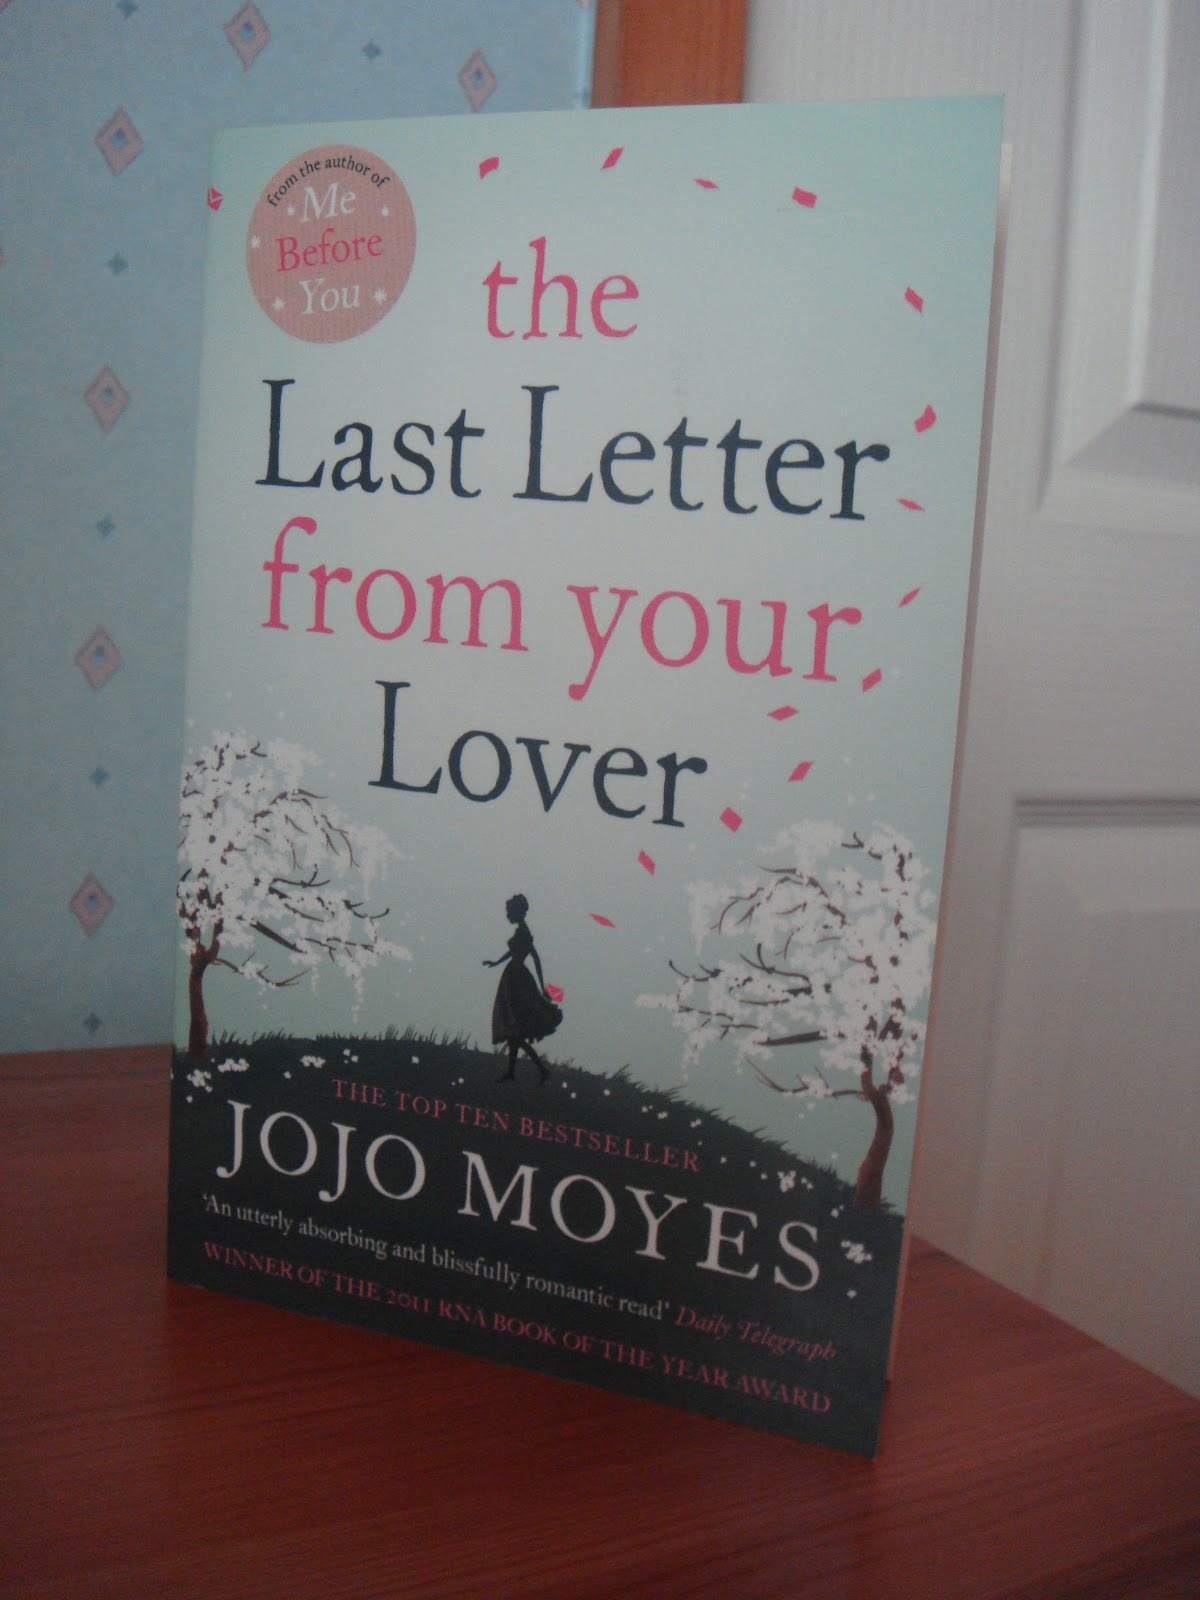 Jean Bull's Writing Blog: the Last Letter from your Lover by Jojo